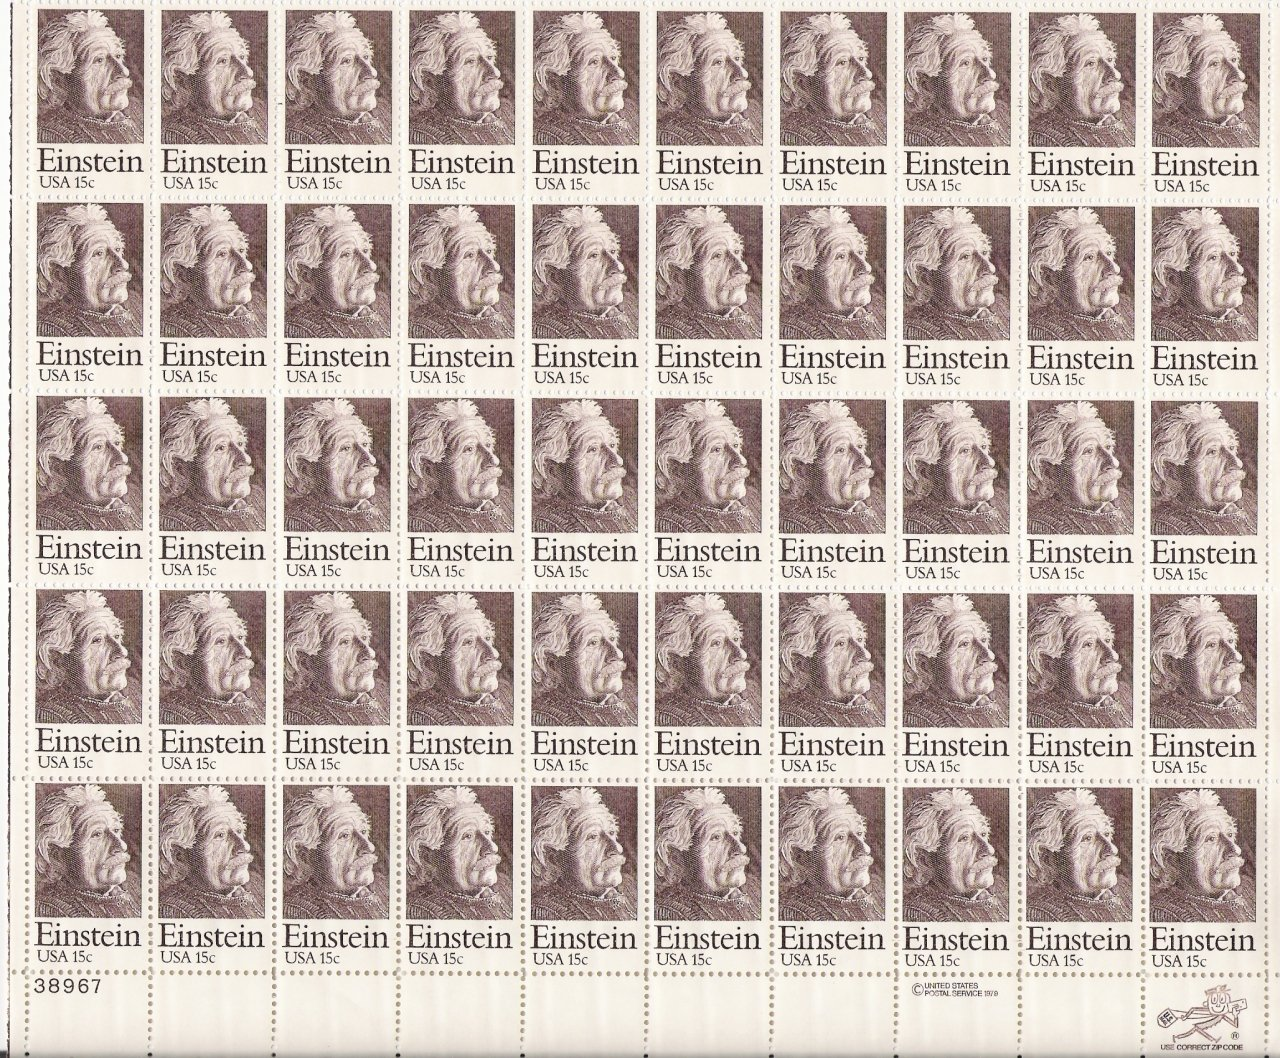 US Scott 1774 - Sheet of 50 - Albert Einstein - Mint Never Hinged